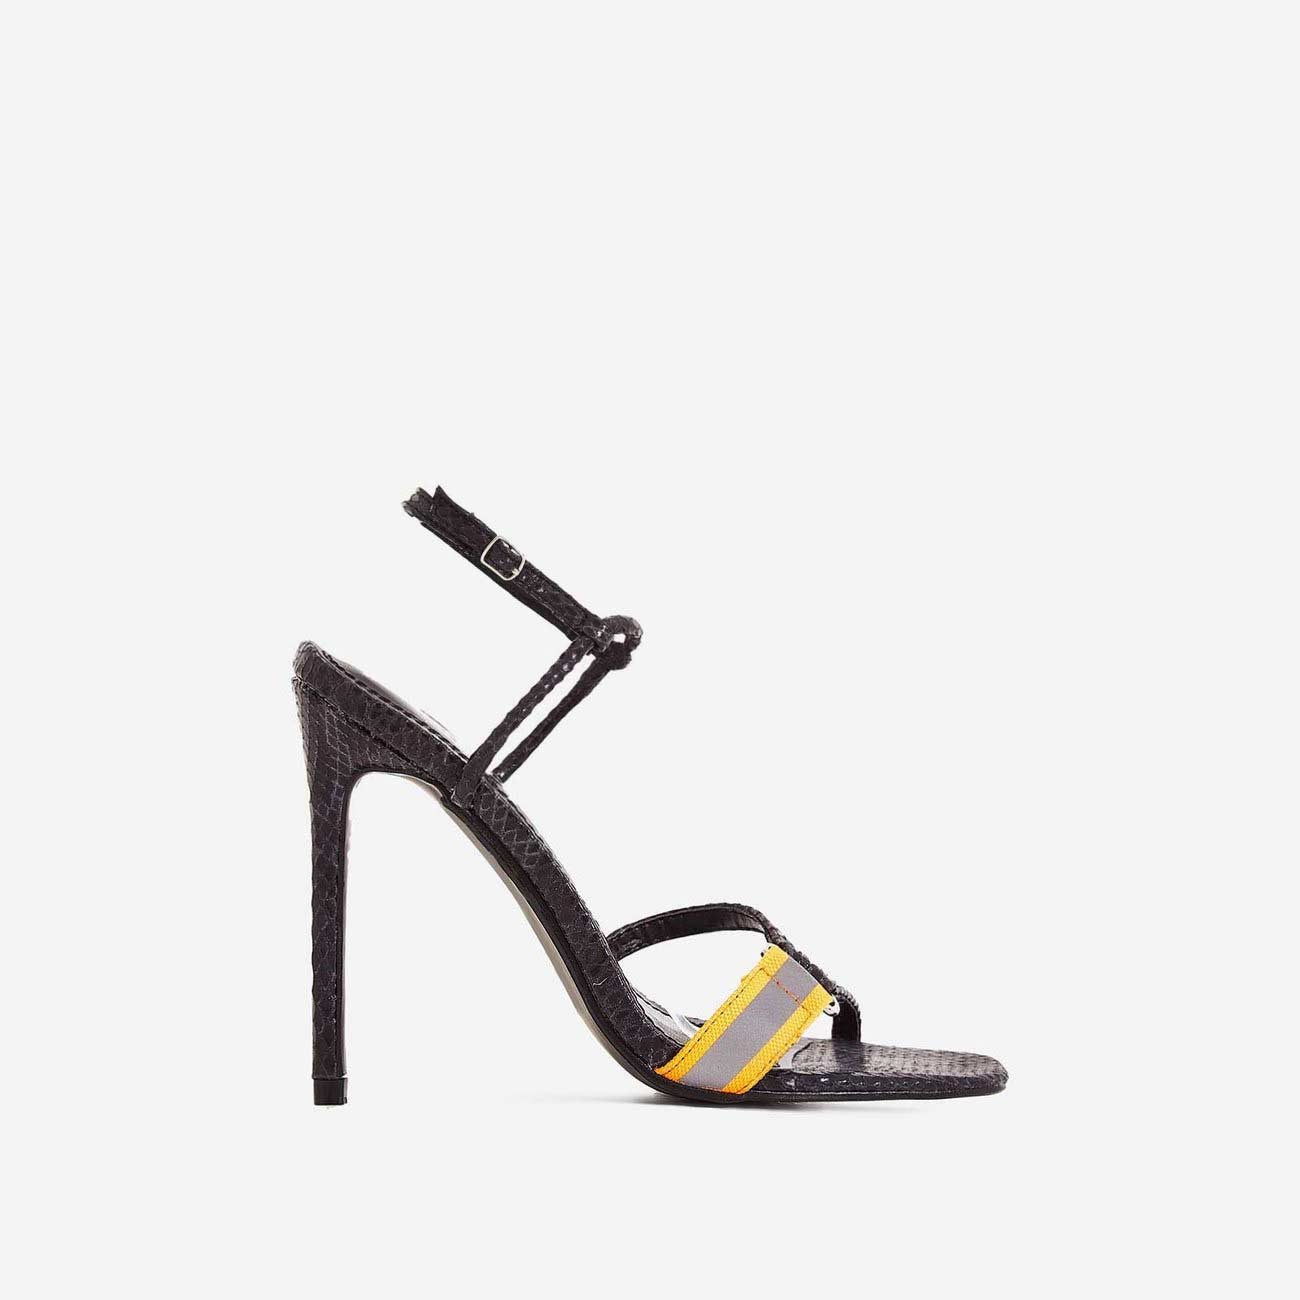 Tasmin Square Toe Barely There Heel In Black Snake Print Faux Leather